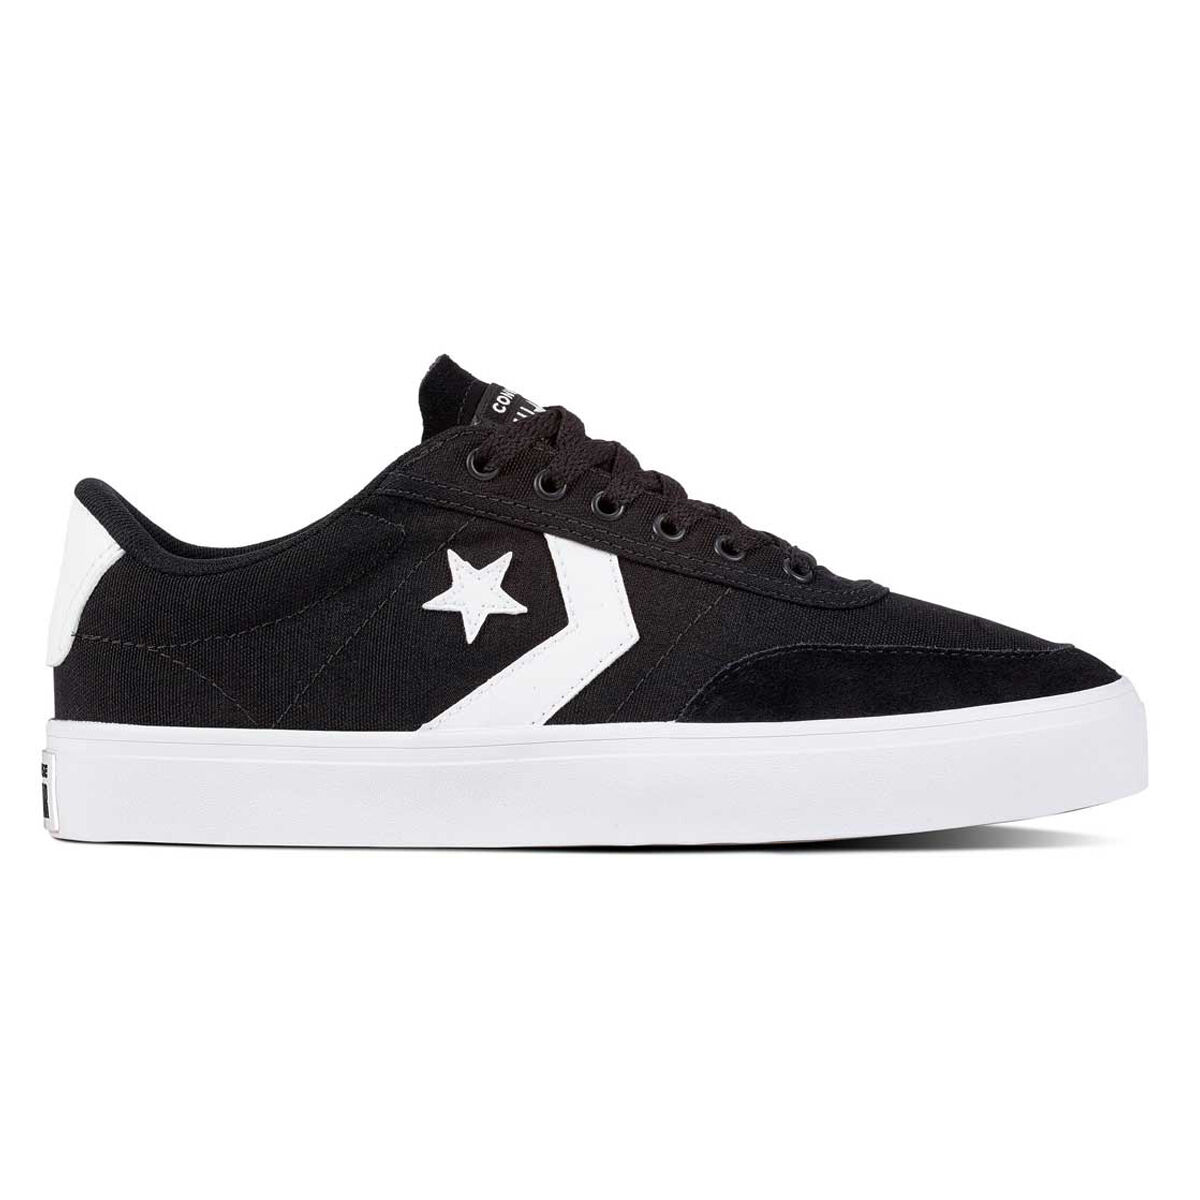 Converse CONS Skateboarding Shoes Make for a Happy Holidays